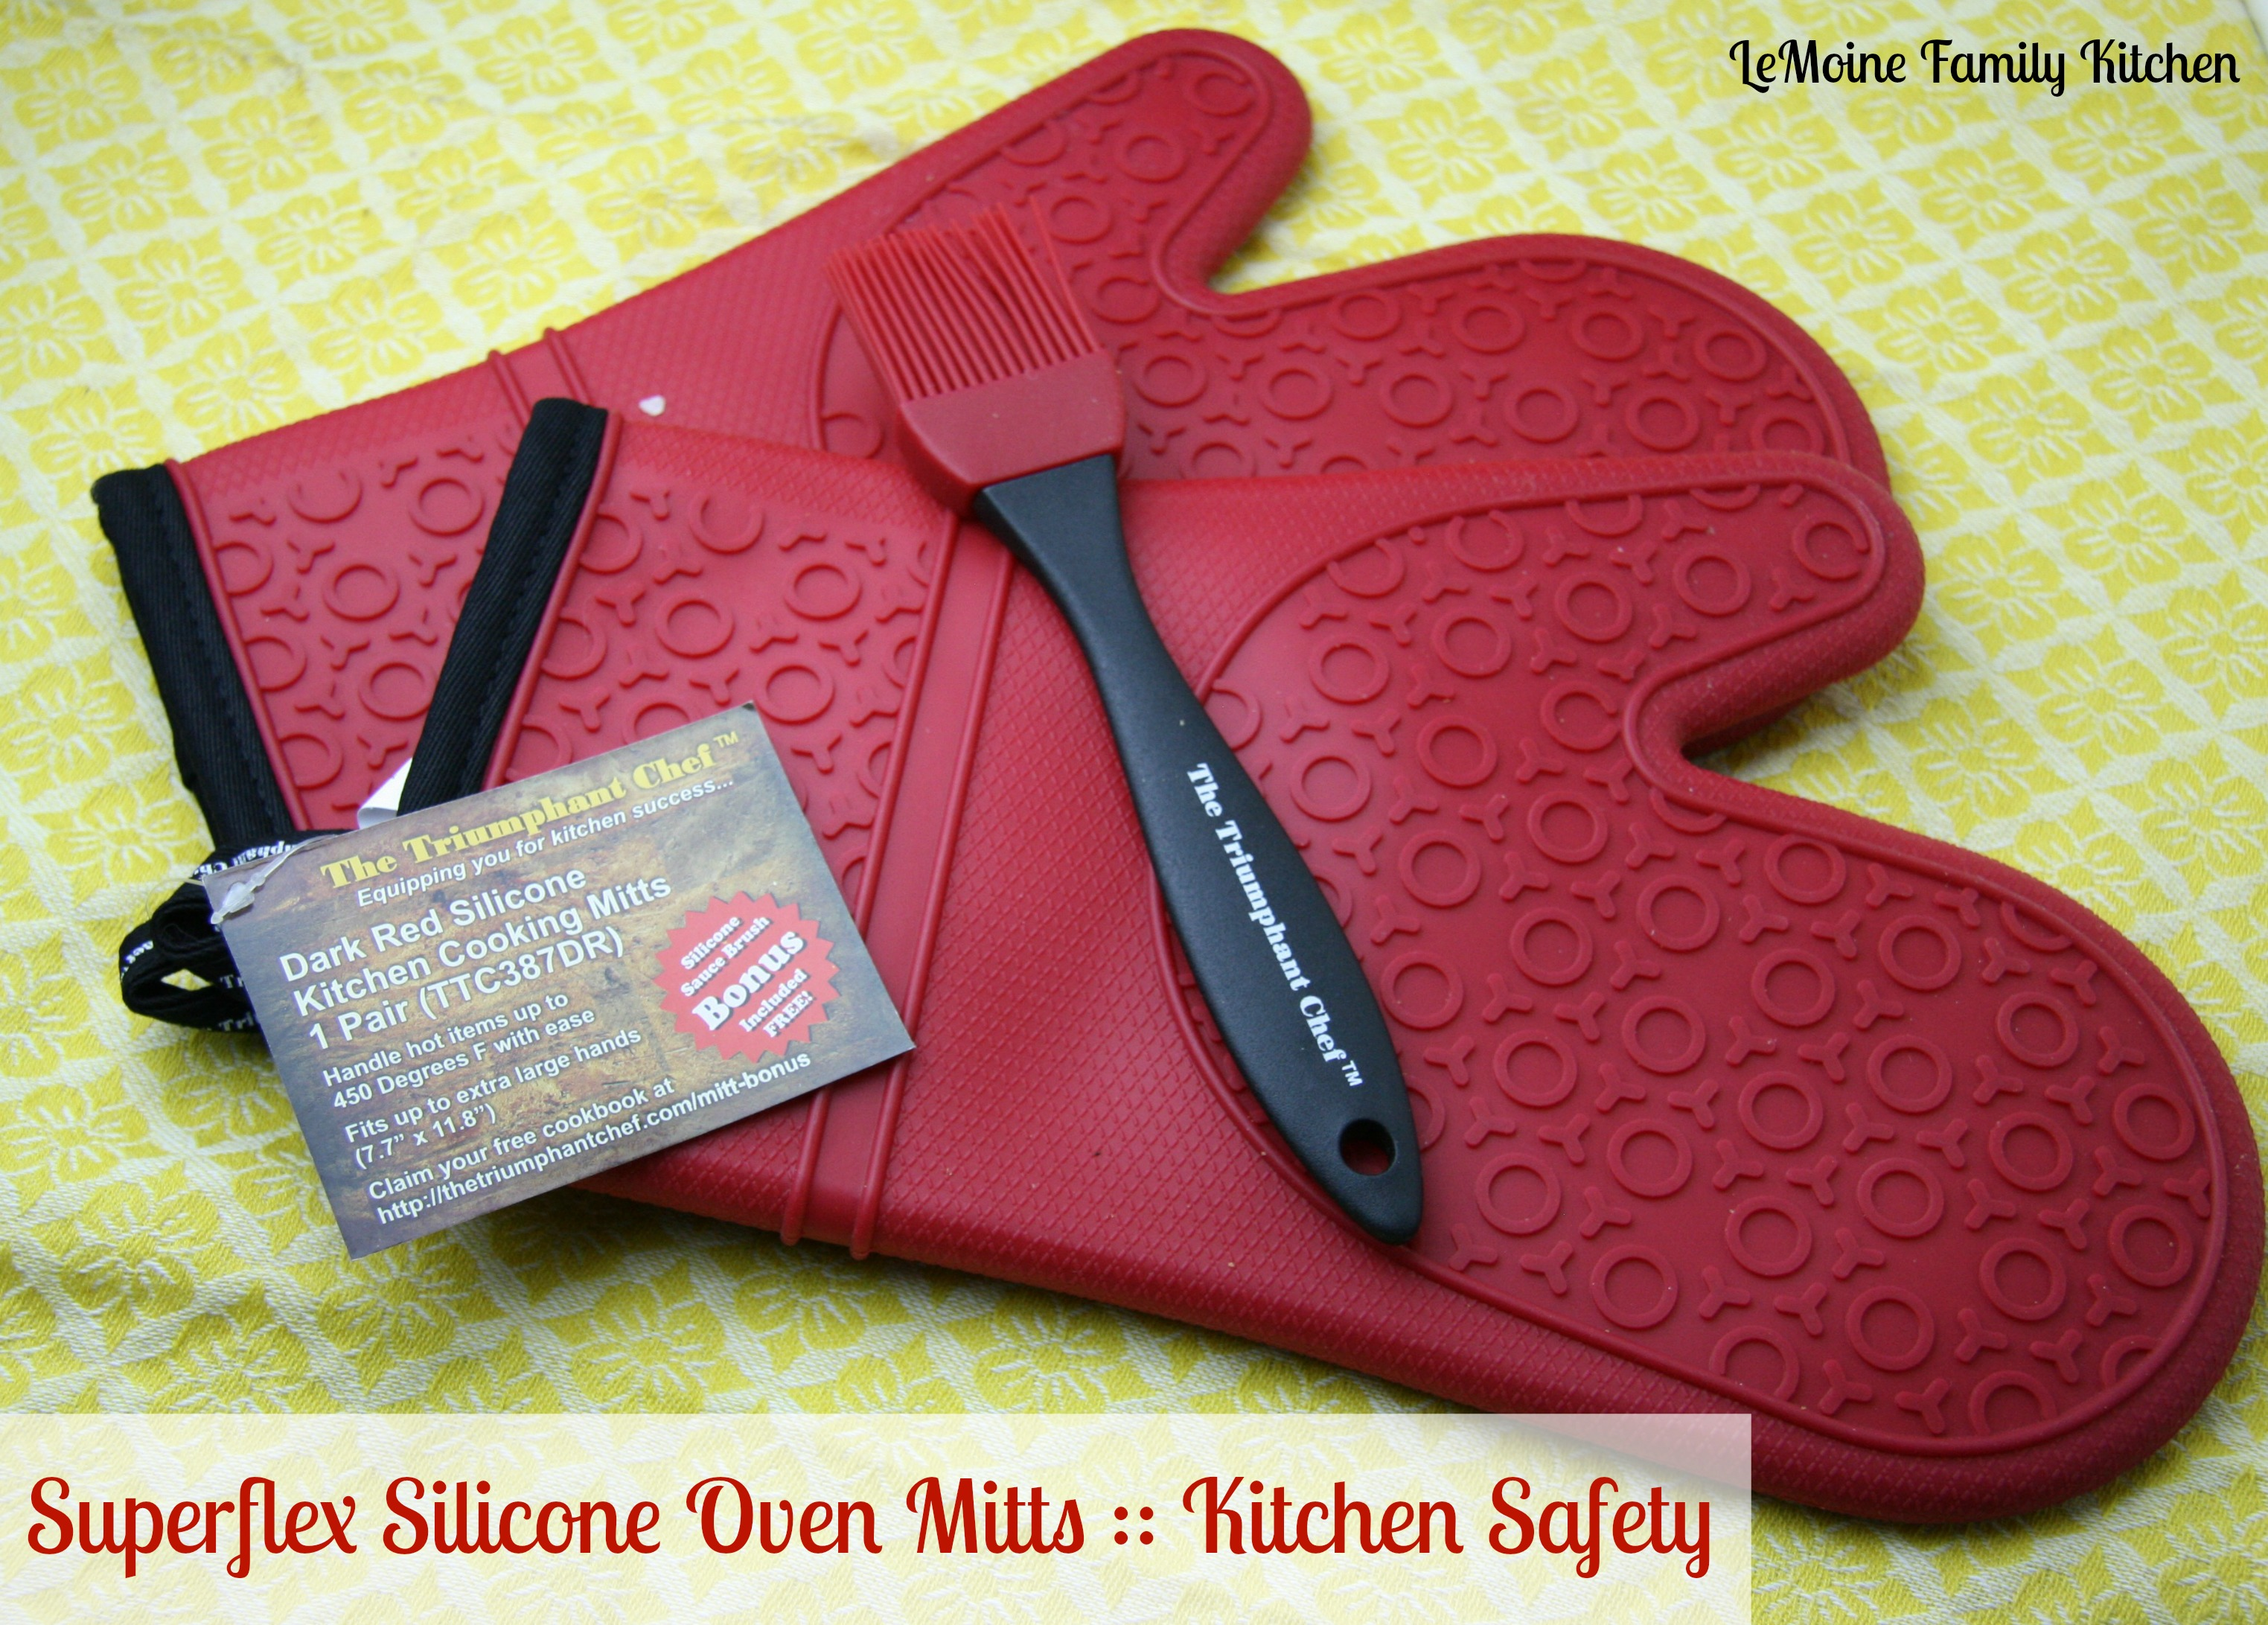 Exceptionnel Super Flex Silicone Oven Mitt | LeMoine Family Kitchen #kitchensafety #ad # Oven #